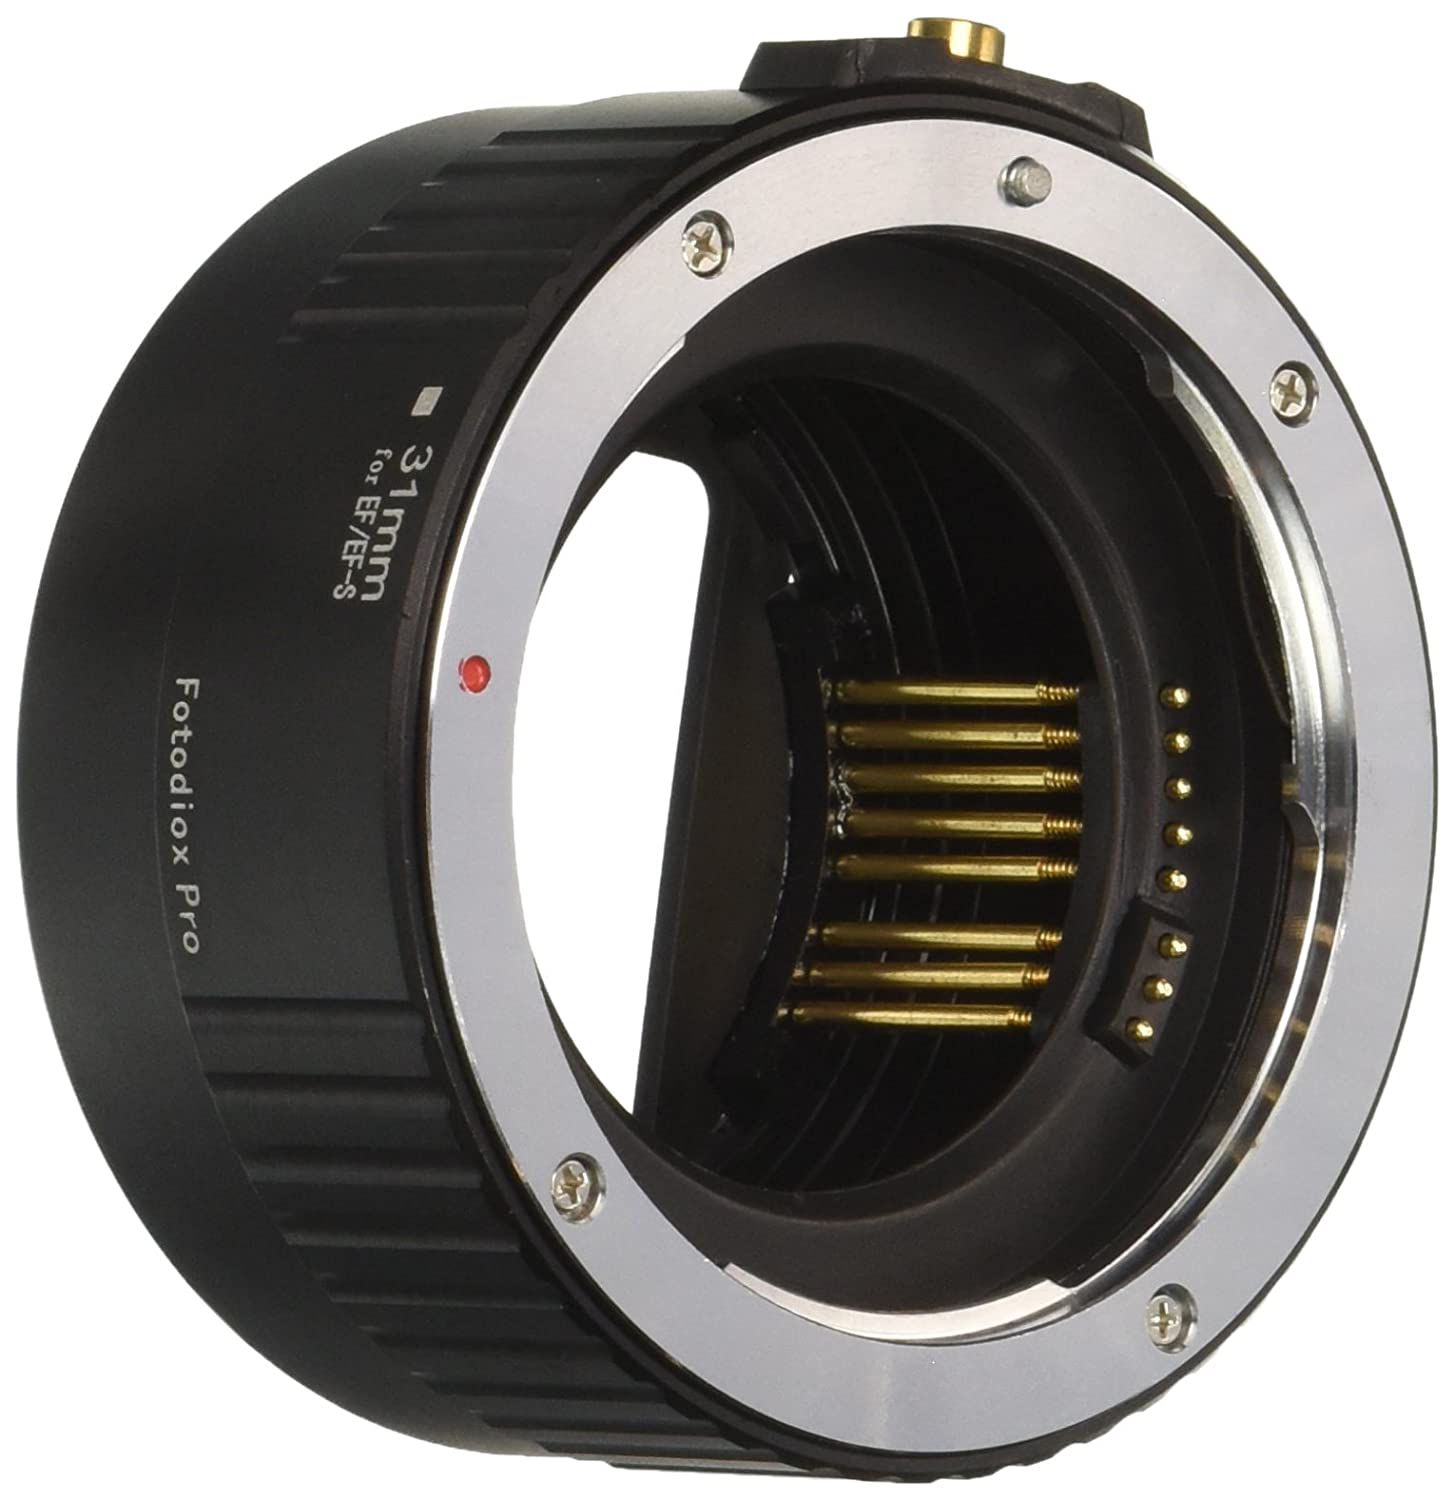 Fotodiox Pro Auto Macro Extension Tube Kit for Canon EOS EF/EF-S Lenses for Extreme Close-Up, Black Fotodiox Inc. MCR-EOS-AF-KIT-Pro